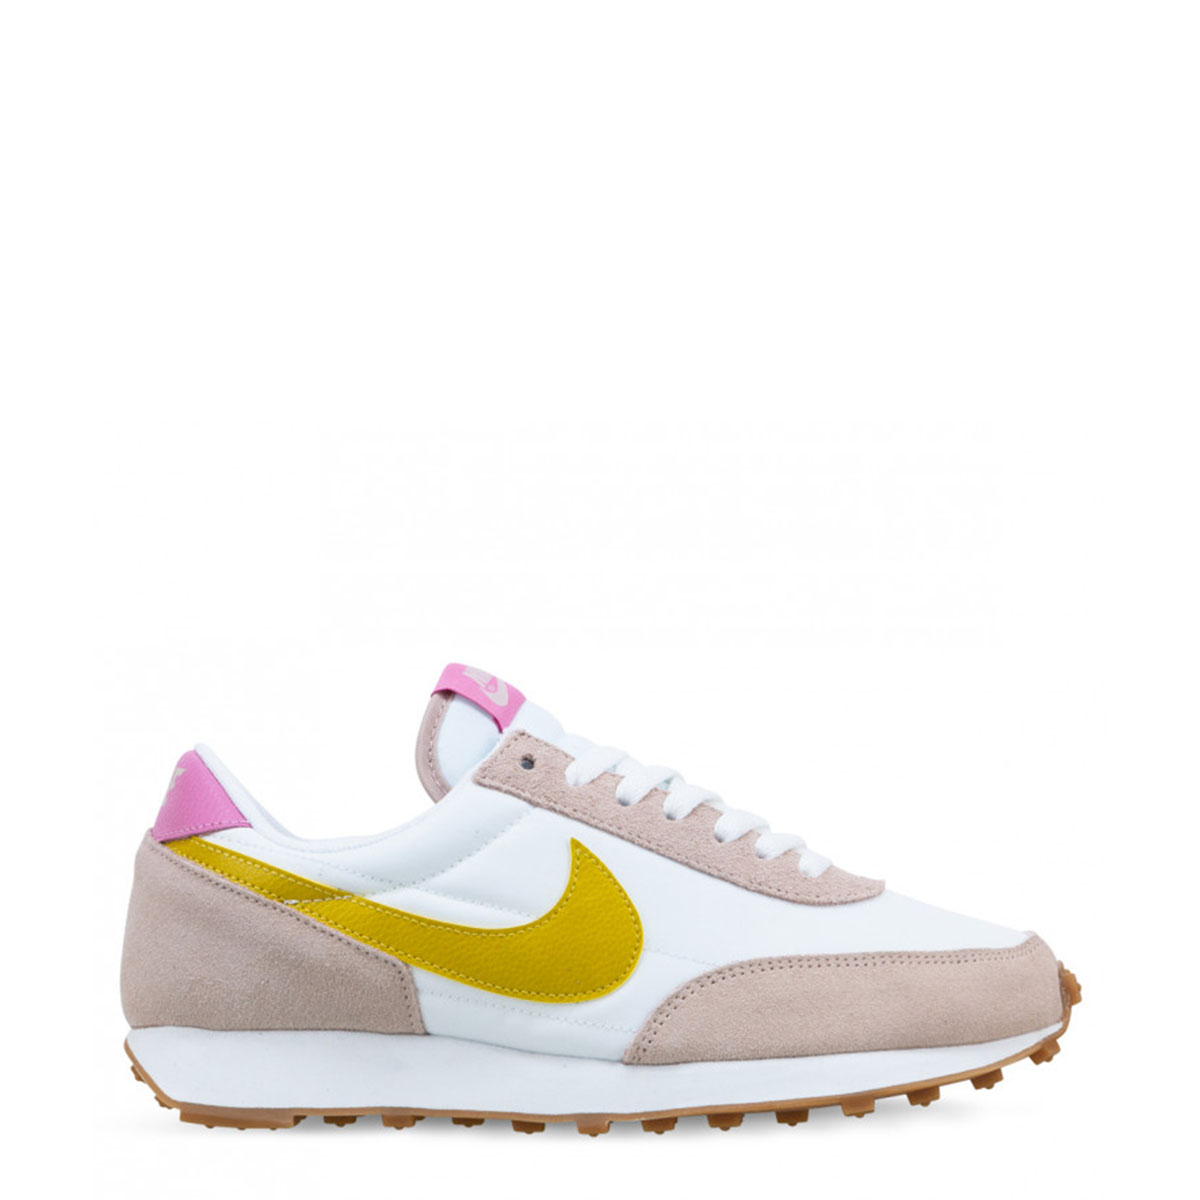 Novelty! Women's sports, casual shoes for women Sneakers ORIGINAL Brand Nike - DaybreakF image